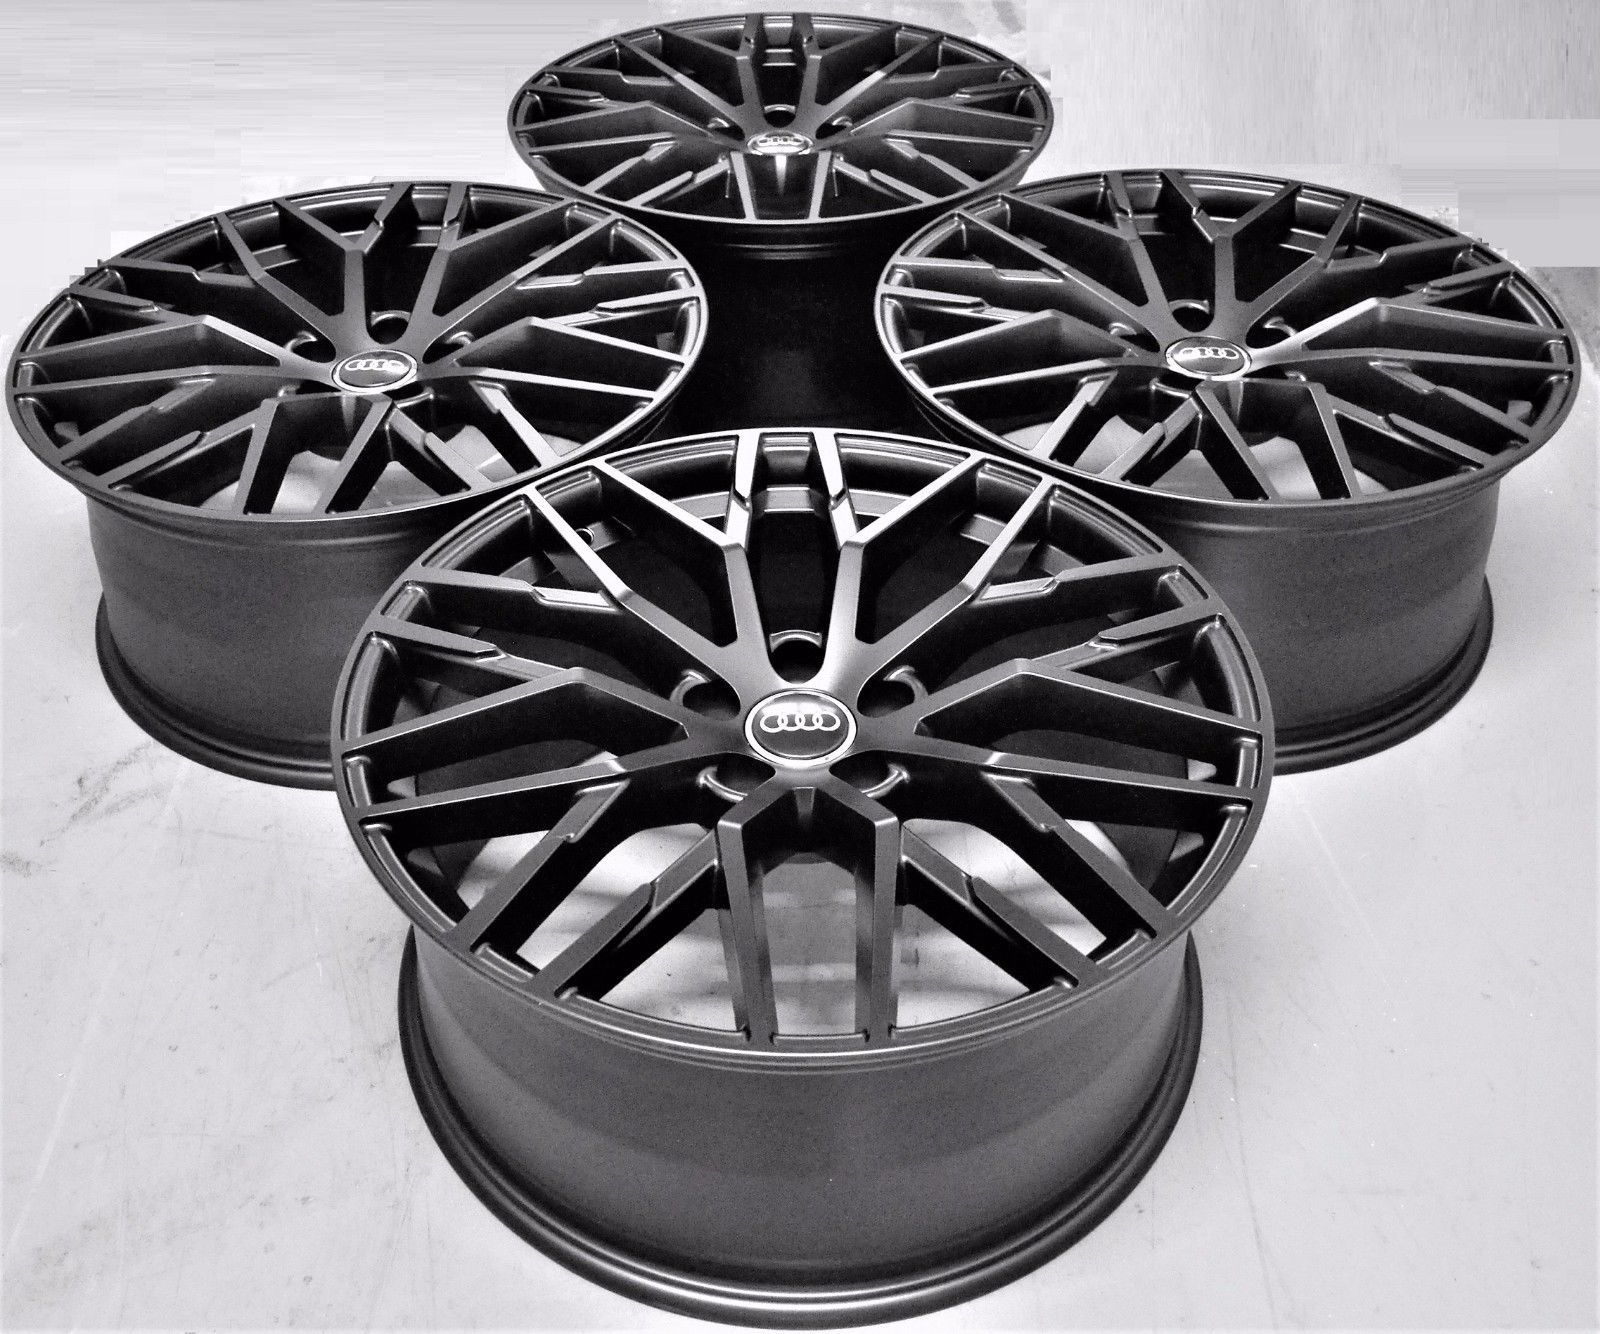 20 2017 R8 Style Black Wheel Rims Fit Audi A4 A6 A8 S4 S6 S8 Rs4 Rs6 1349 Mb Ebay Black Wheels Wheel Rims Wheel